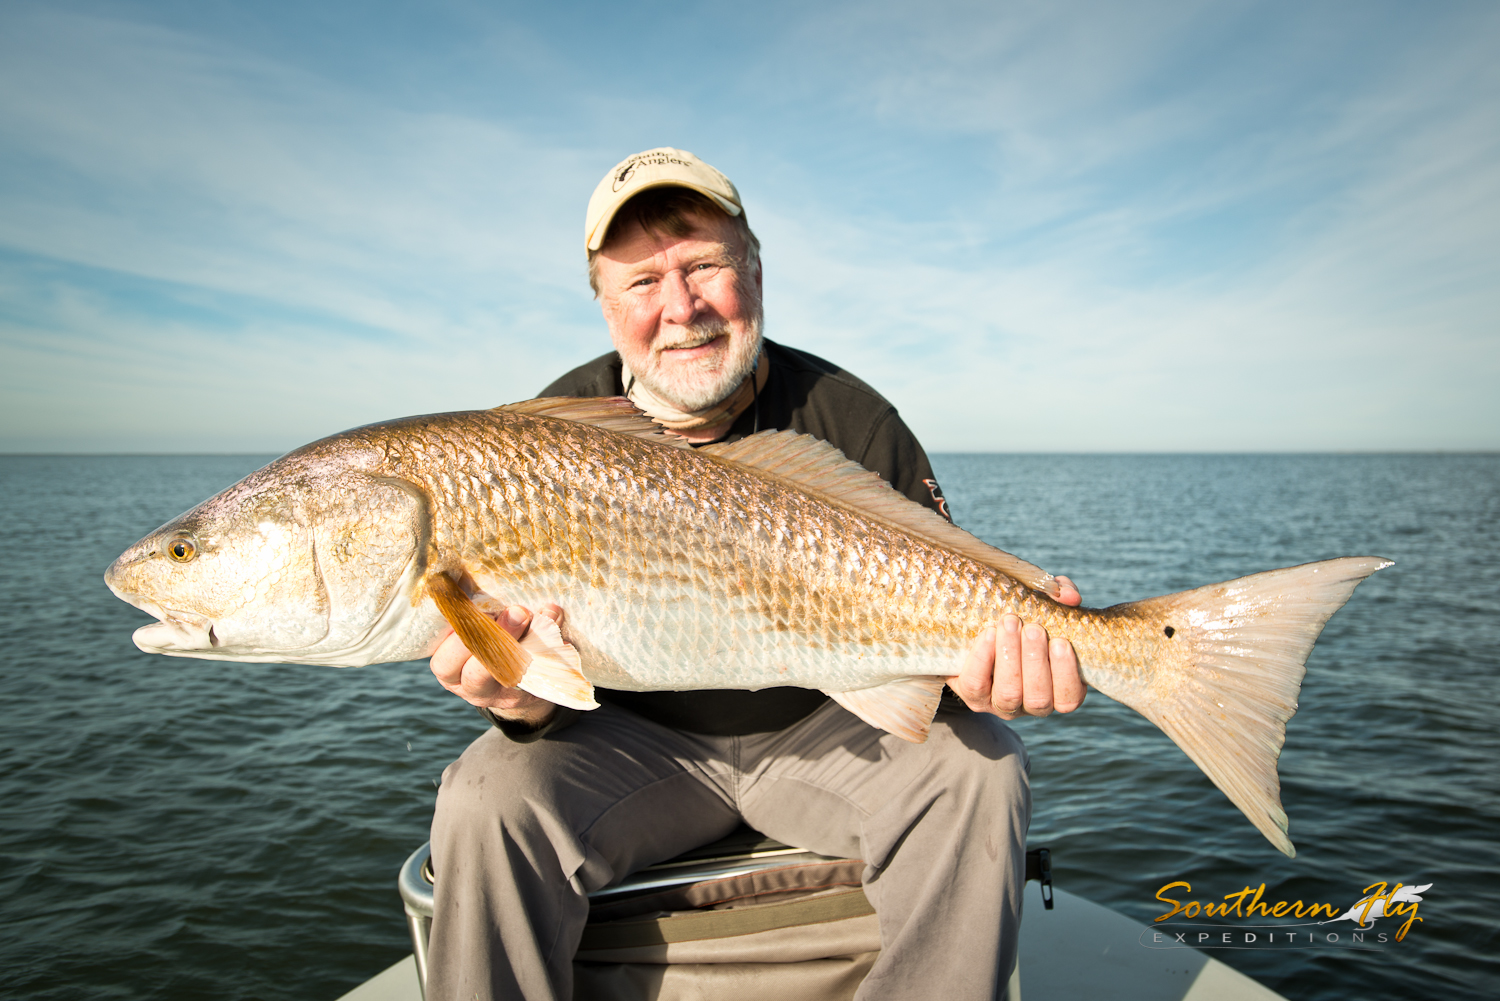 Fishing guides in Louisiana - Southern Fly Expeditions fly fishing for redfish